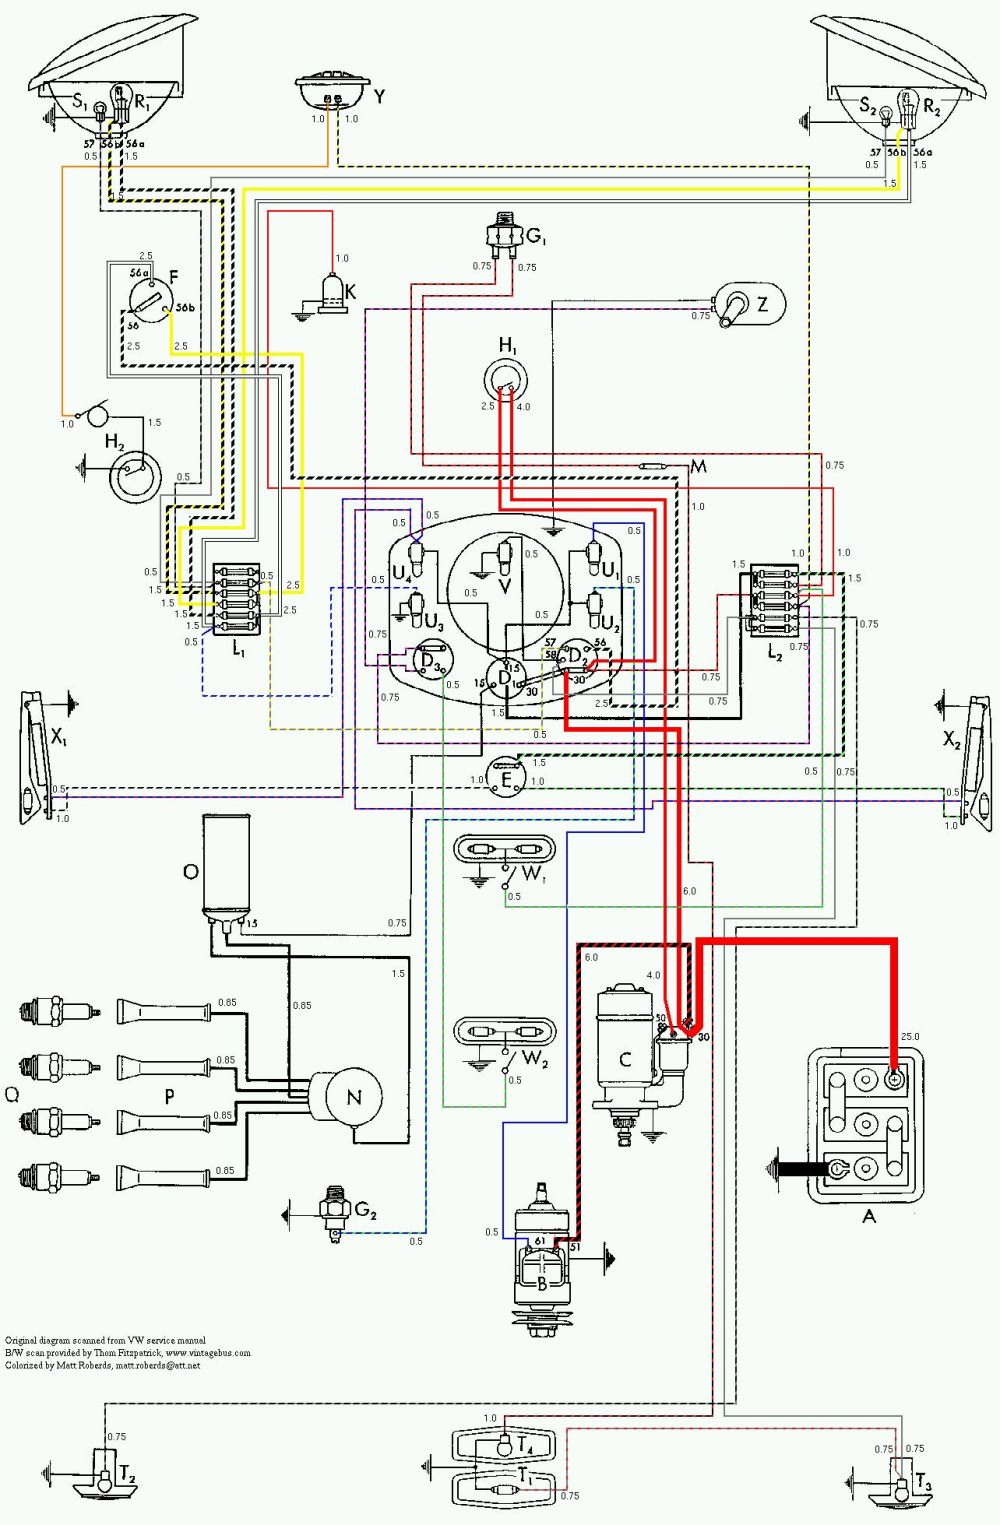 medium resolution of thomas bus wiring diagrams thomas bus chevy wiring diagram 2003 ford e250 fuse diagram 1990 ford e250 fuse box diagram